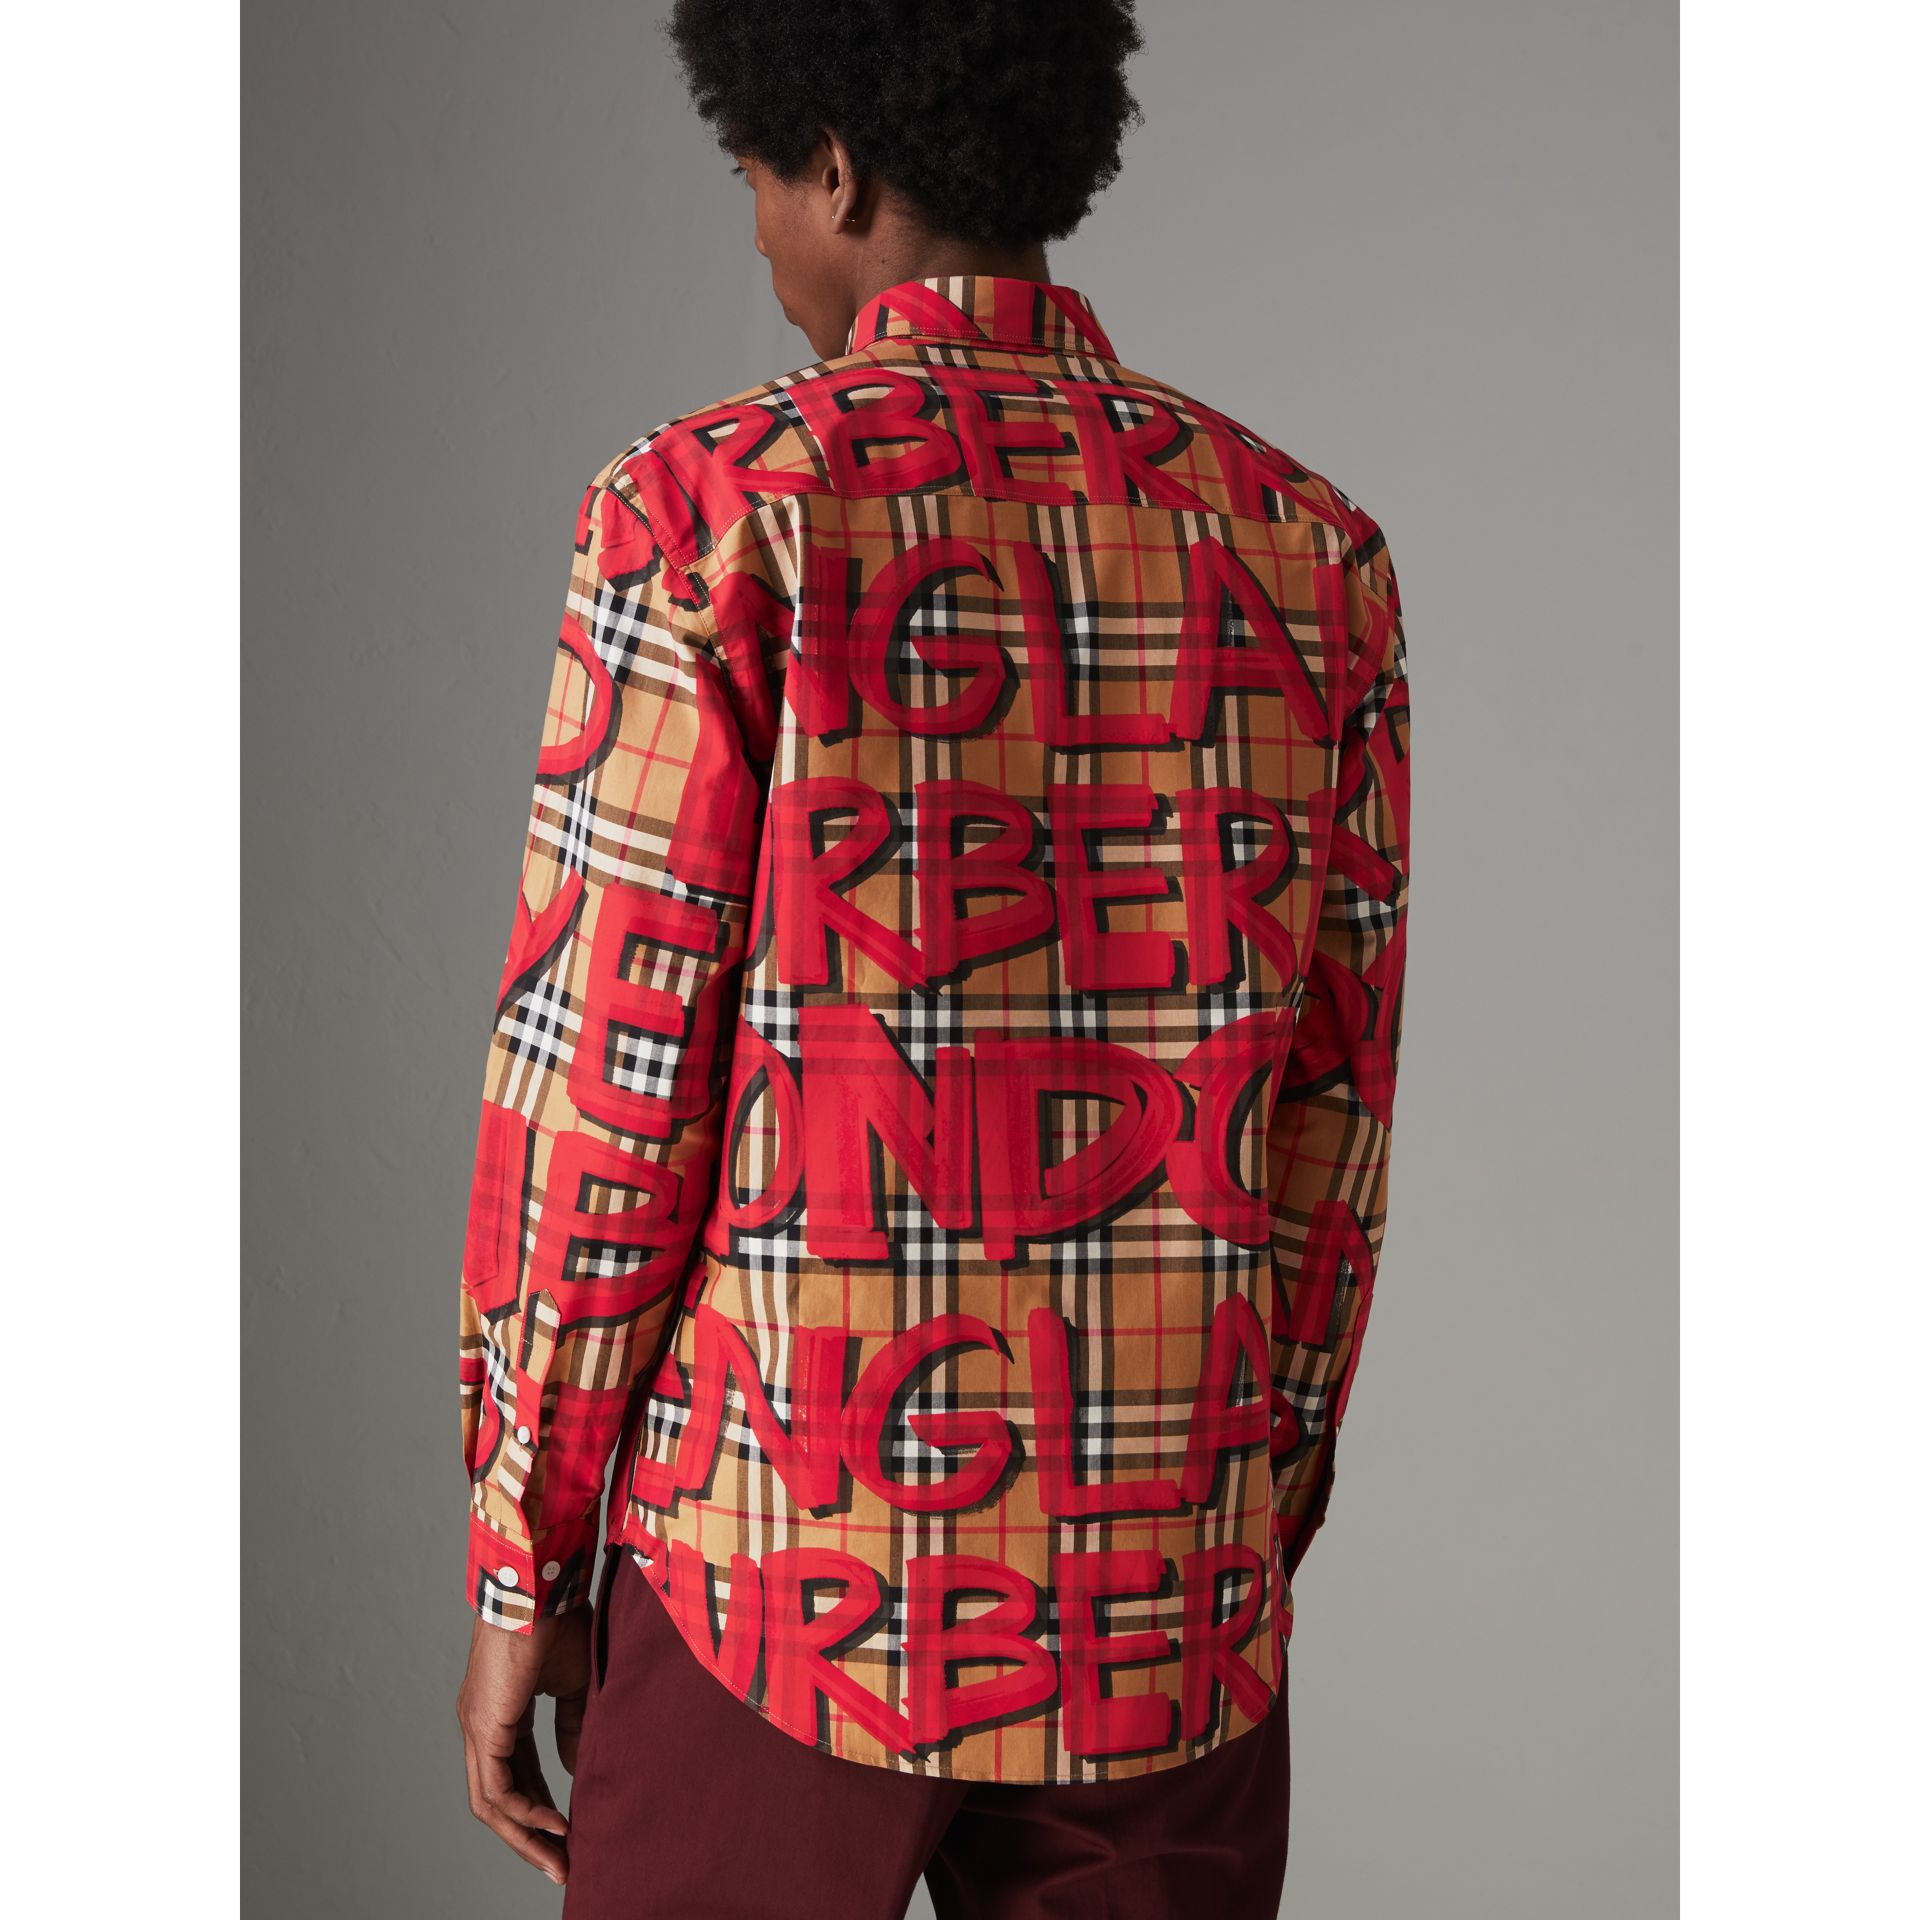 Graffiti Print Vintage Check Shirt in Bright Red - Men | Burberry United Kingdom - gallery image 2